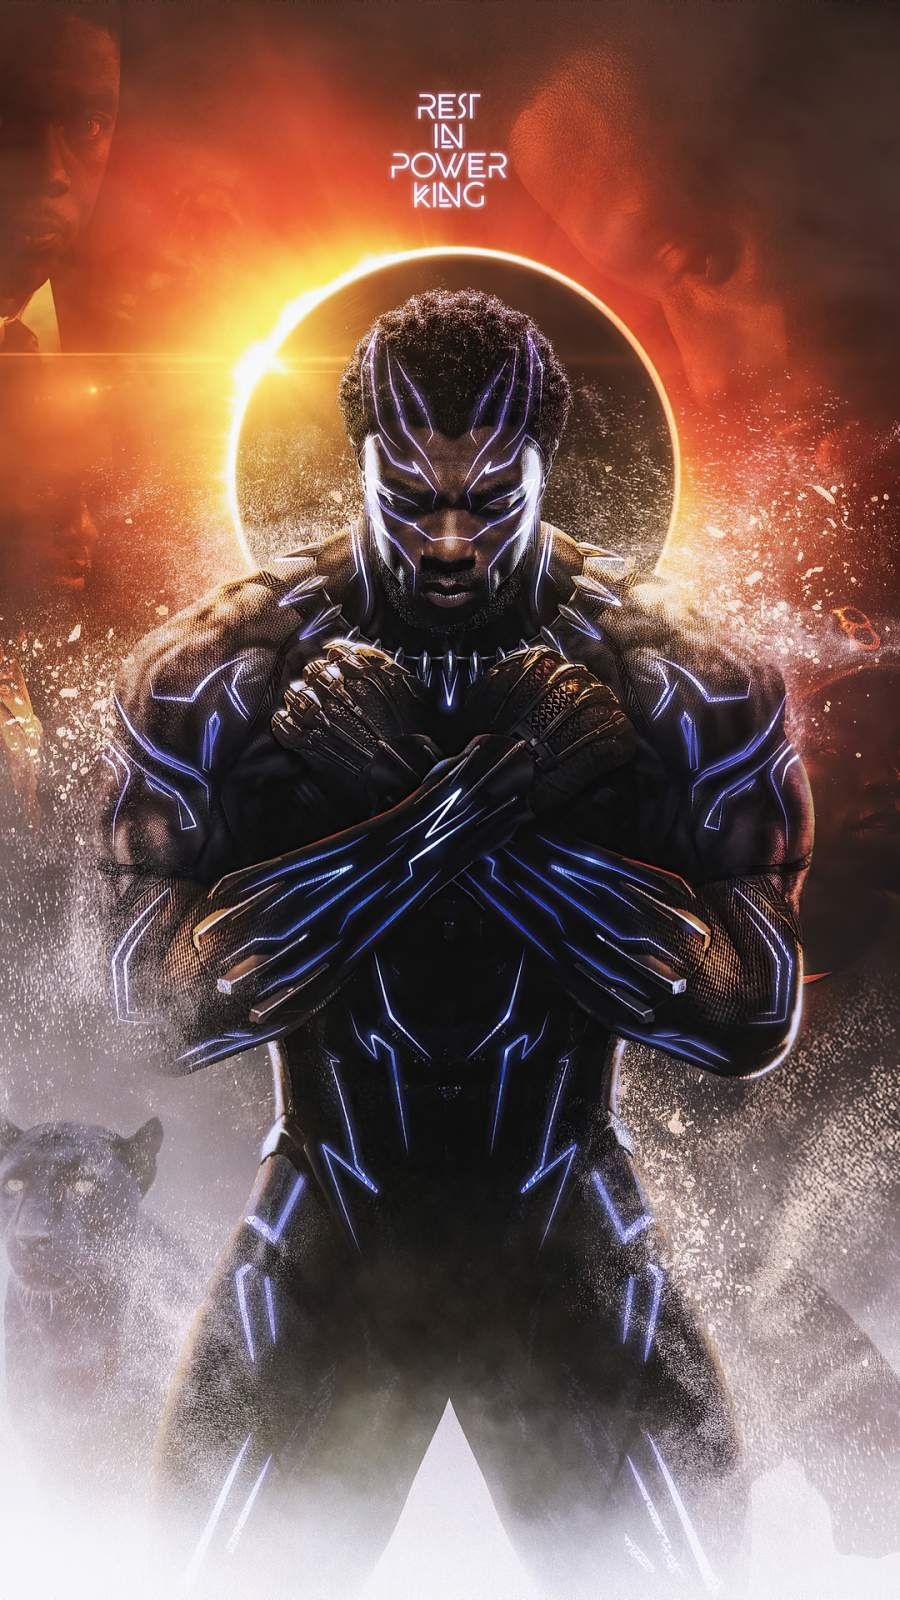 Black Panther Wakanda King iPhone Wallpaper - iPhone Wallpapers